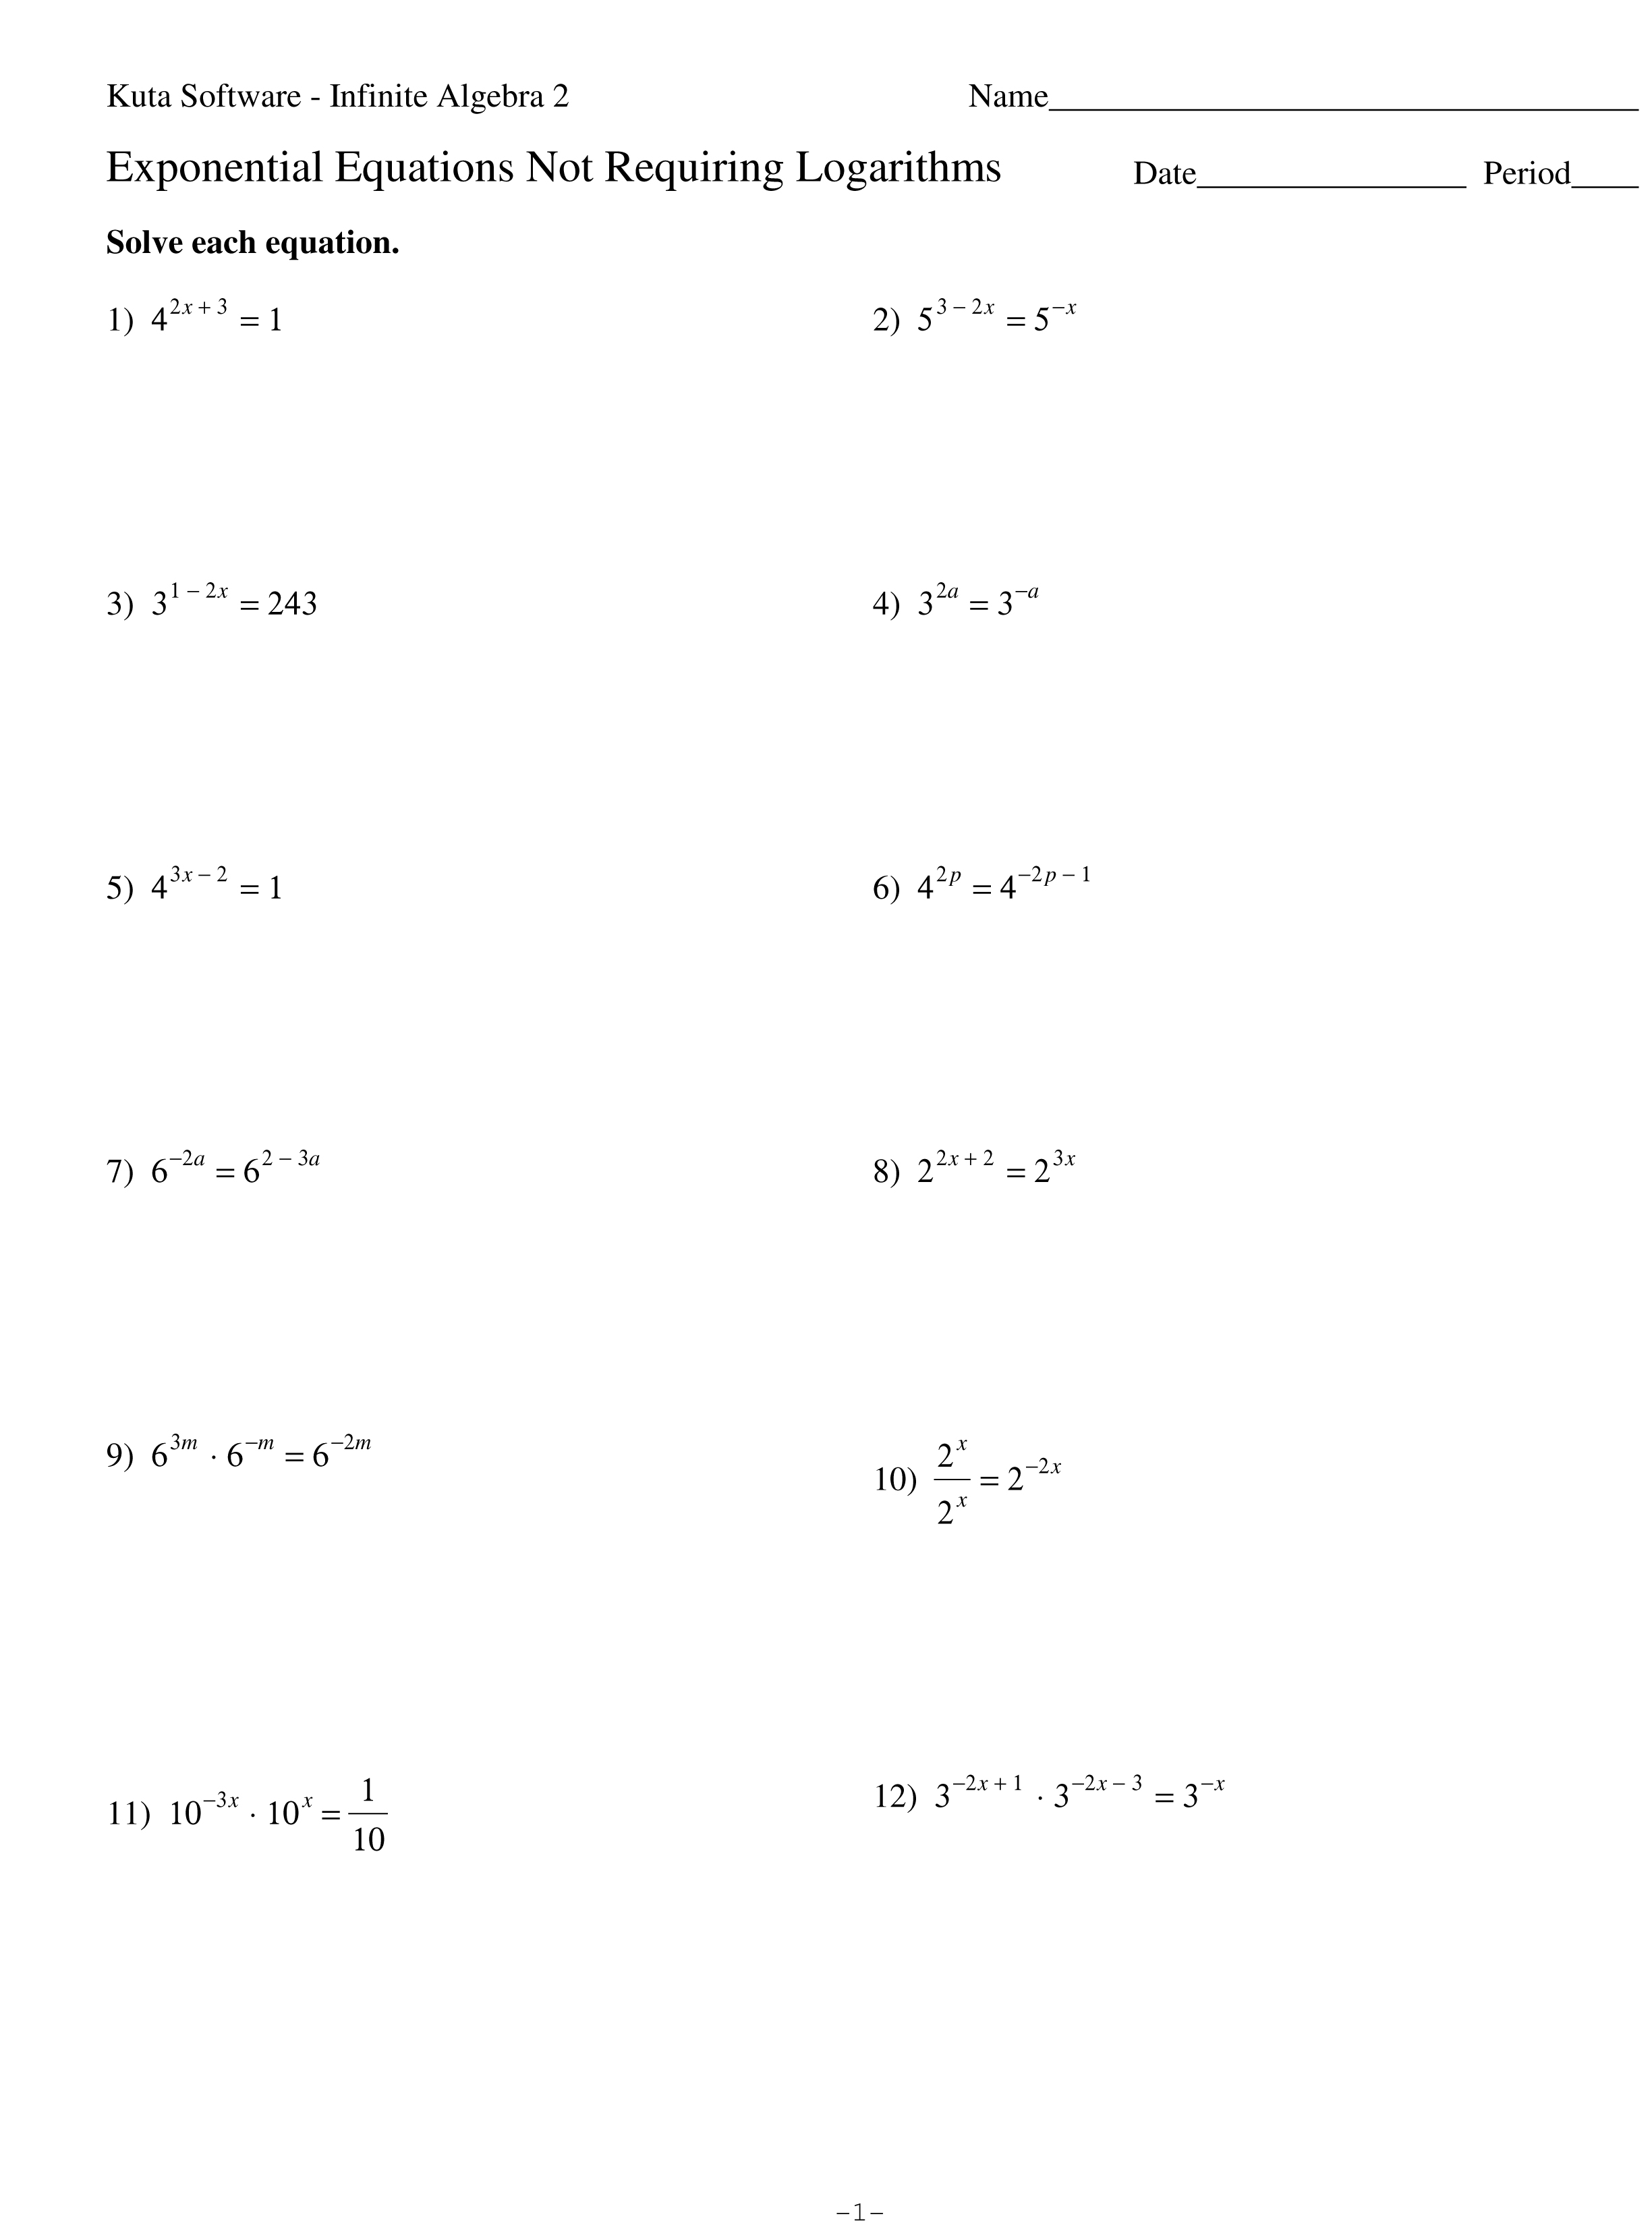 Solving Exponential Equations With Logarithms Worksheet